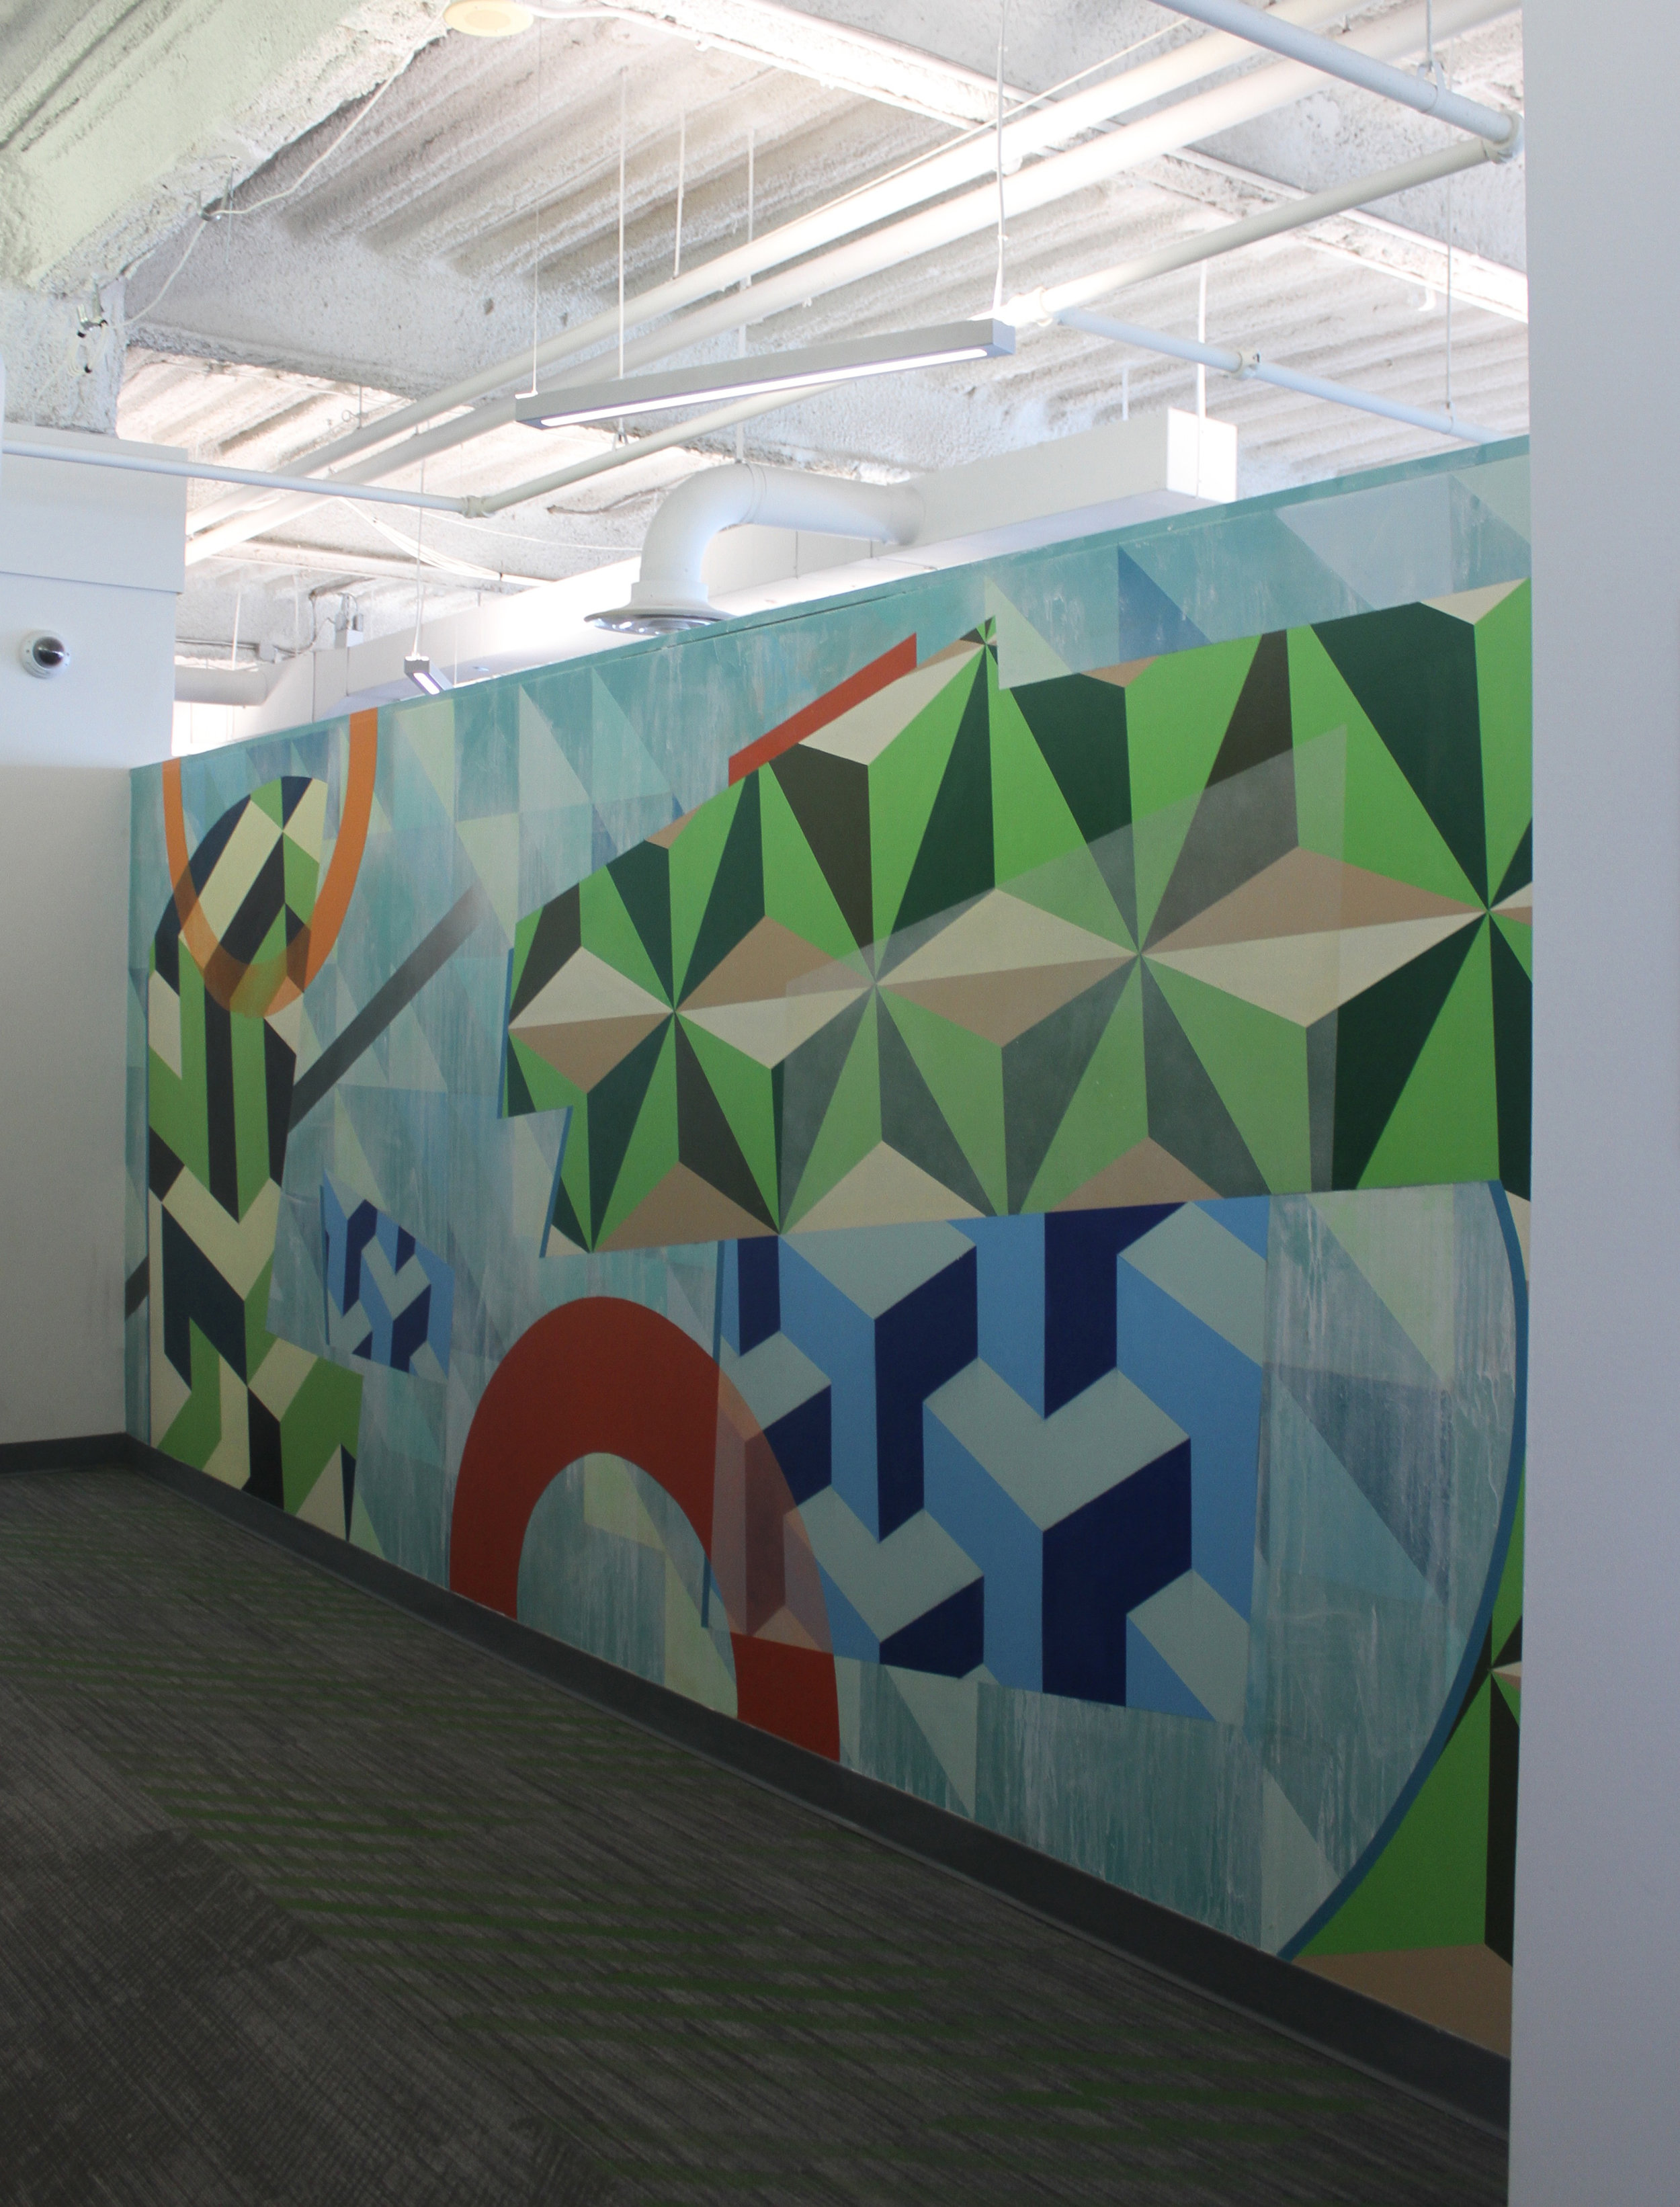 AMAZON.COM CORPORATE OFFICES MURAL No. 1, DETROIT - 2017